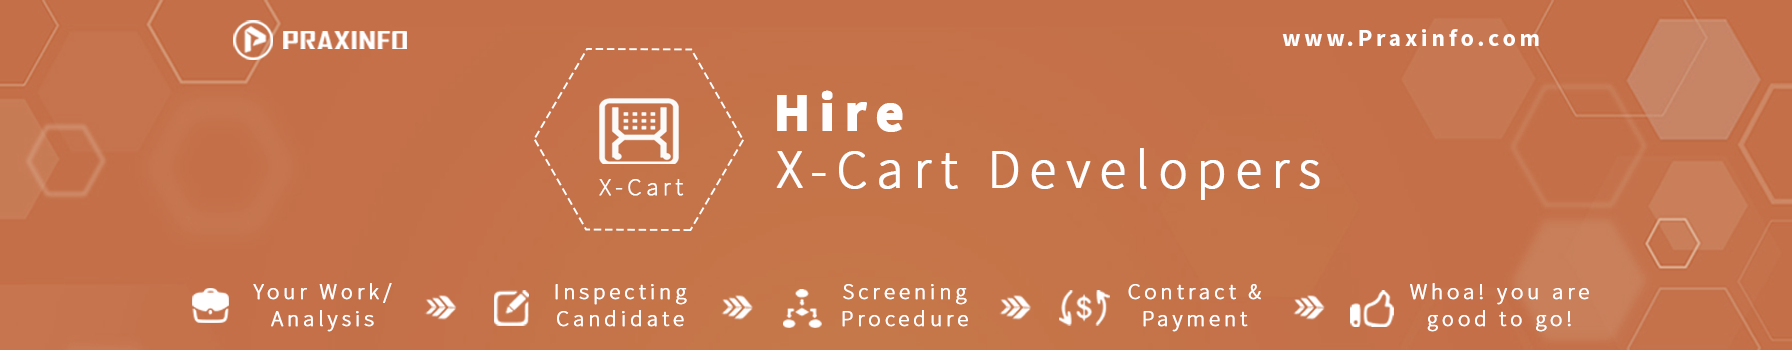 hire-x-cart-developer.png